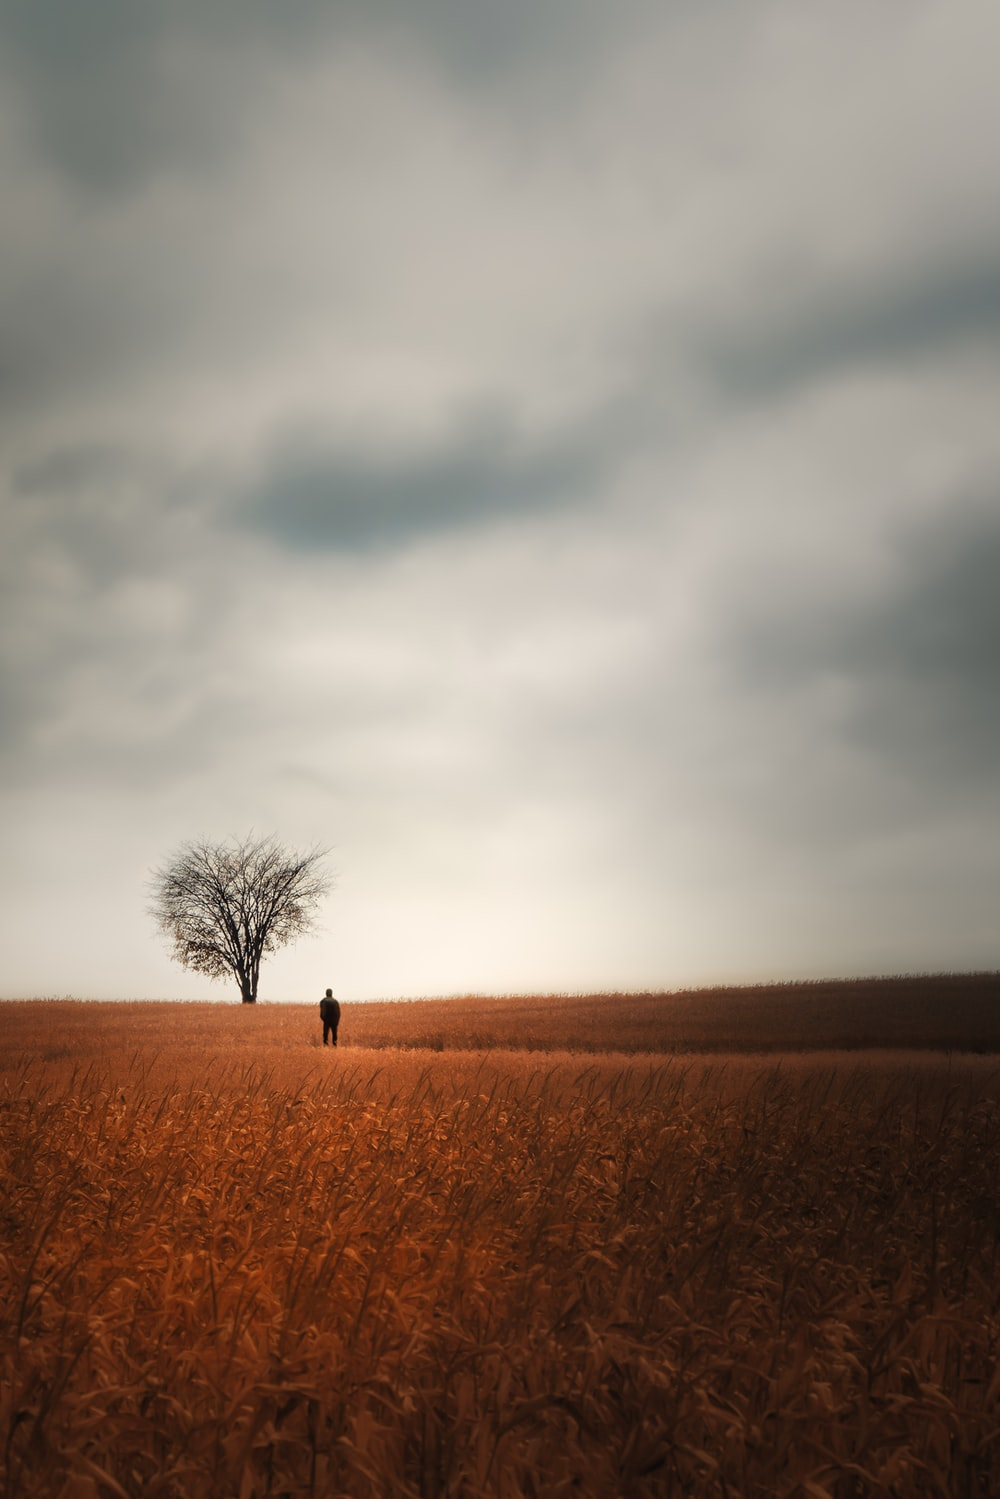 person standing on brown field under gray clouds